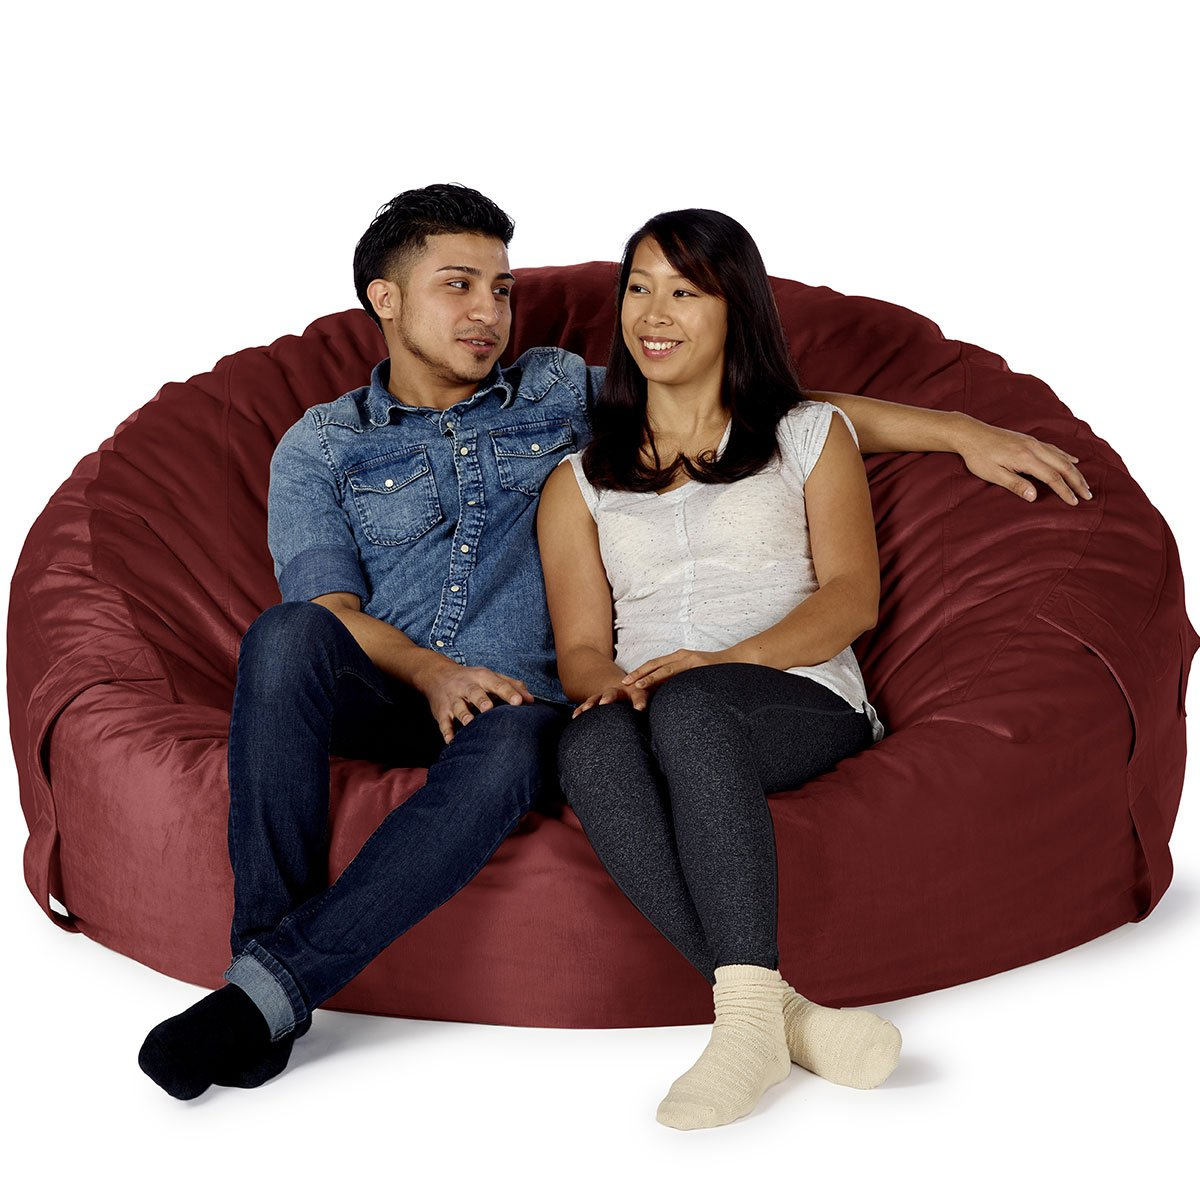 Amazon Take Ten Giant 60 Luxury Bean Bag Chair Multiple Colors Seats 2 Adults Durable And Comfortable Kitchen Dining